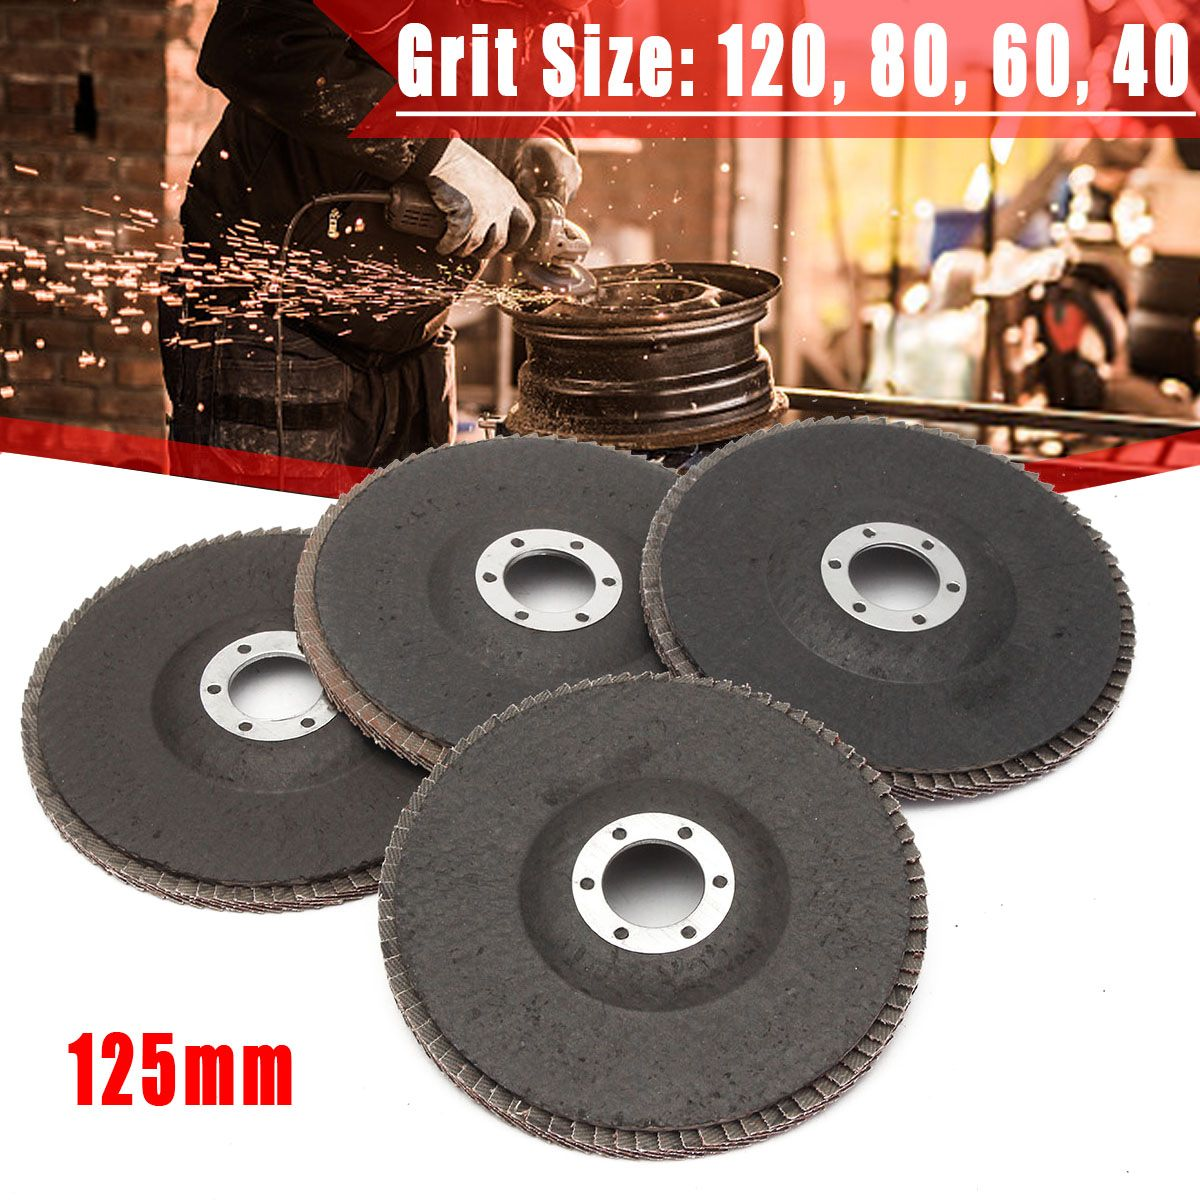 13000 Rpm Aluminum Oxide Abrasive Tools 40/60/80/120 Grit Grinding Wheel Flap Disc 125mm 5 Inch Angle Grinder Sanding Tool